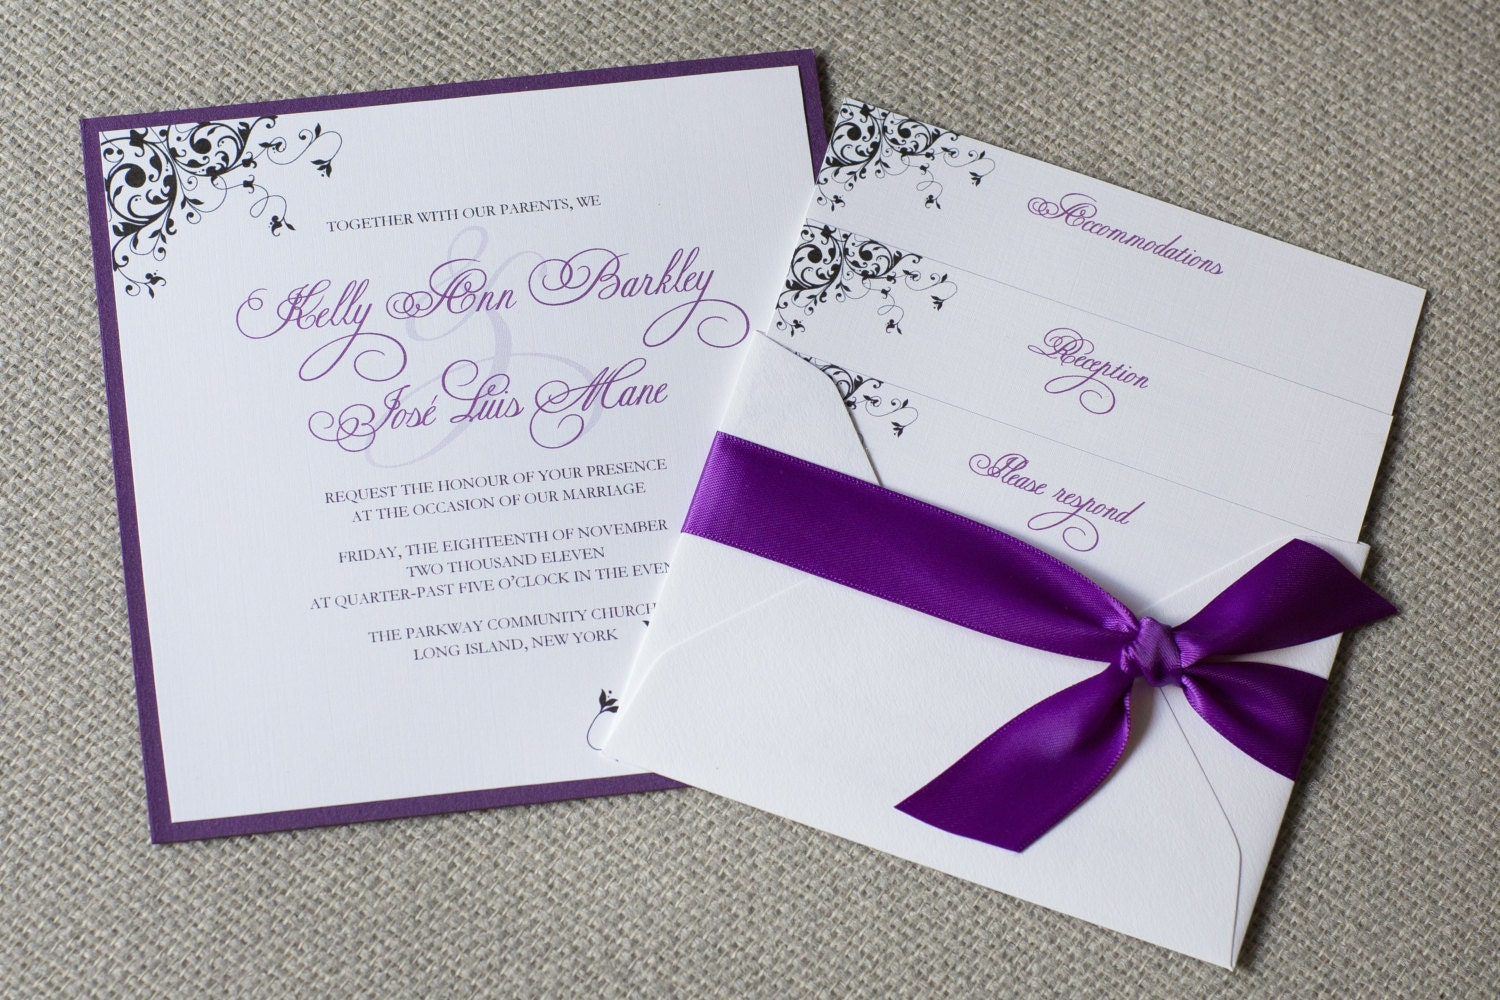 Wedding Invitations With Purple Ribbon: Square Wedding Invitations Purple Wedding Invitations